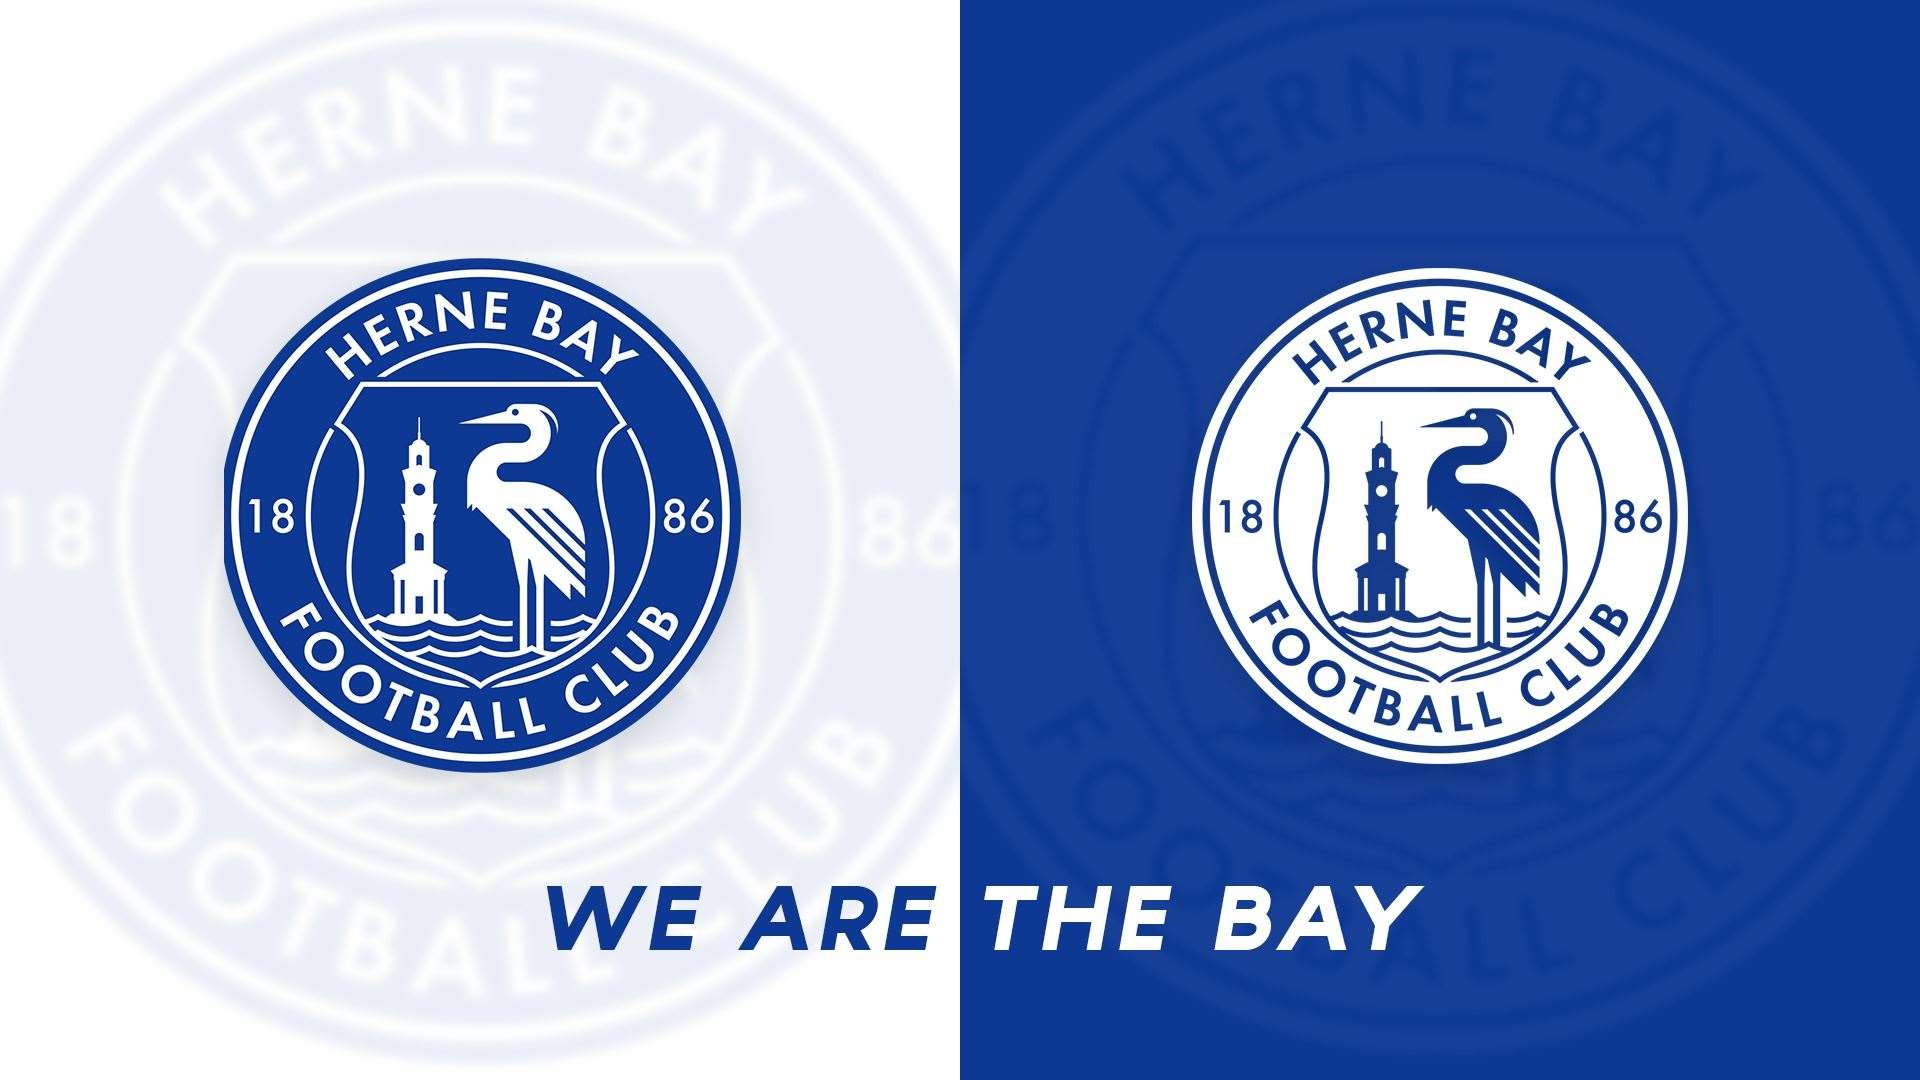 The new look Herne Bay badge(37983299)